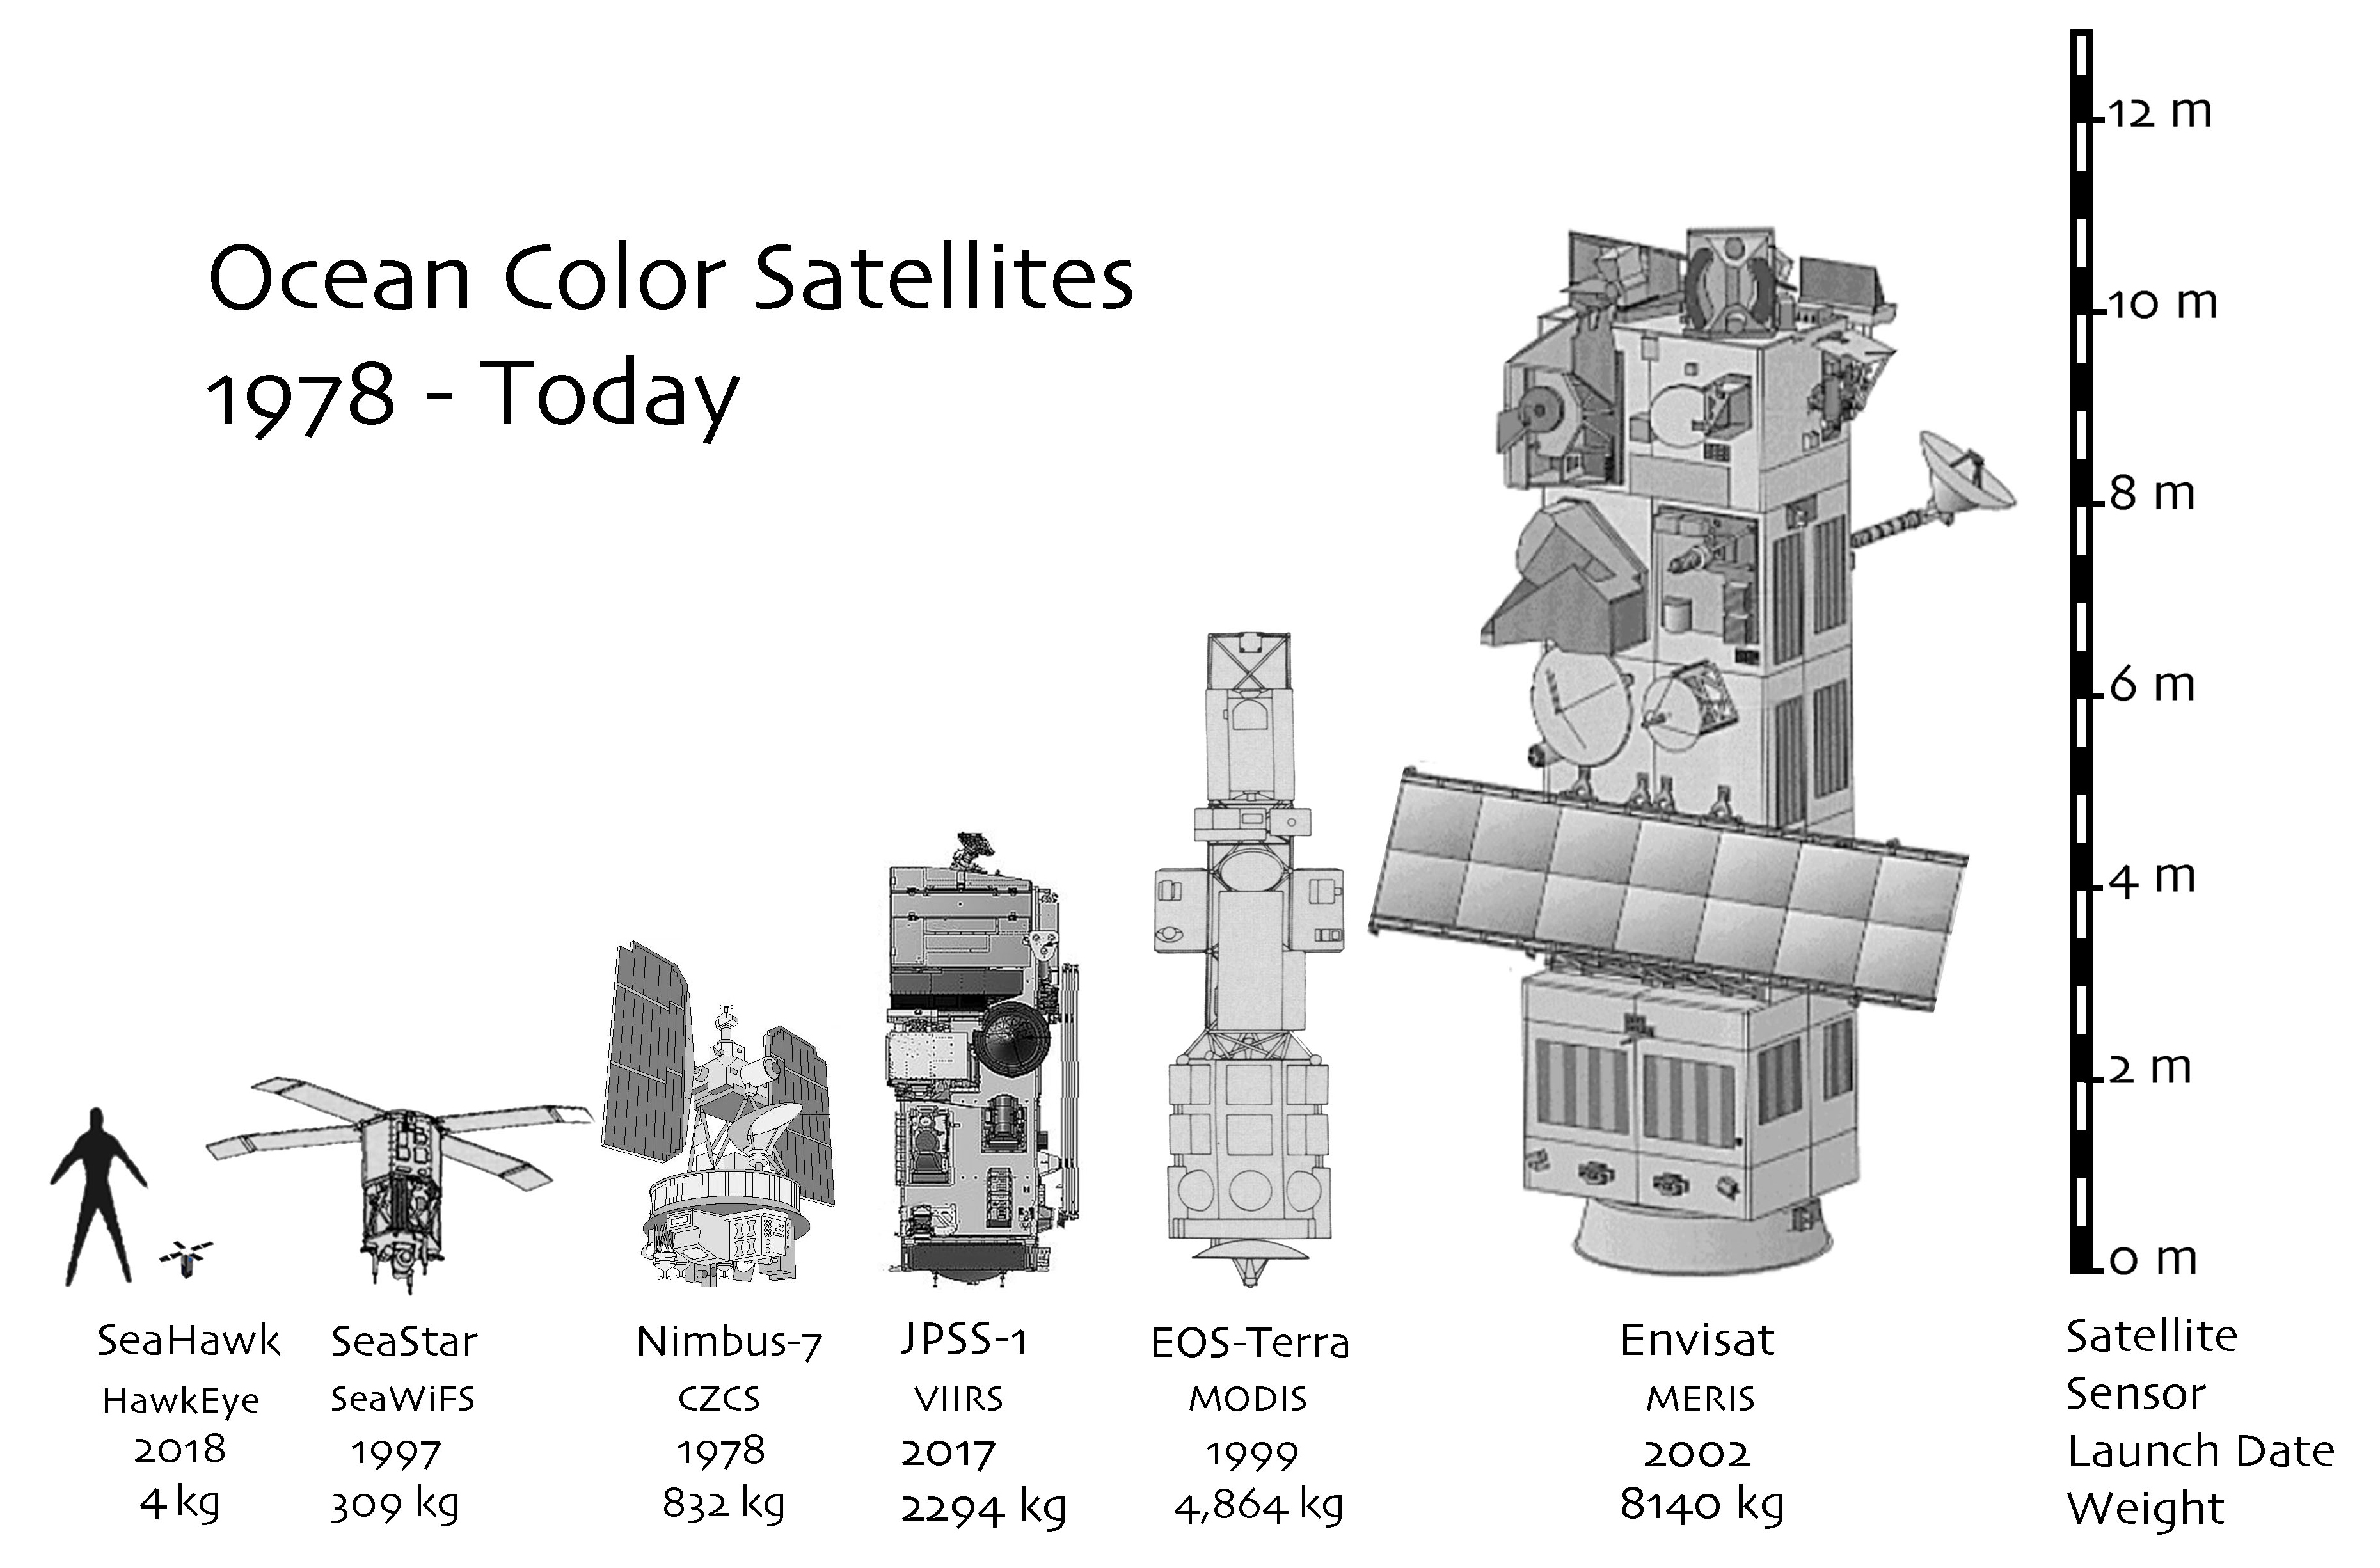 A graphic showing sizes of satellites that take measurements of ocean color